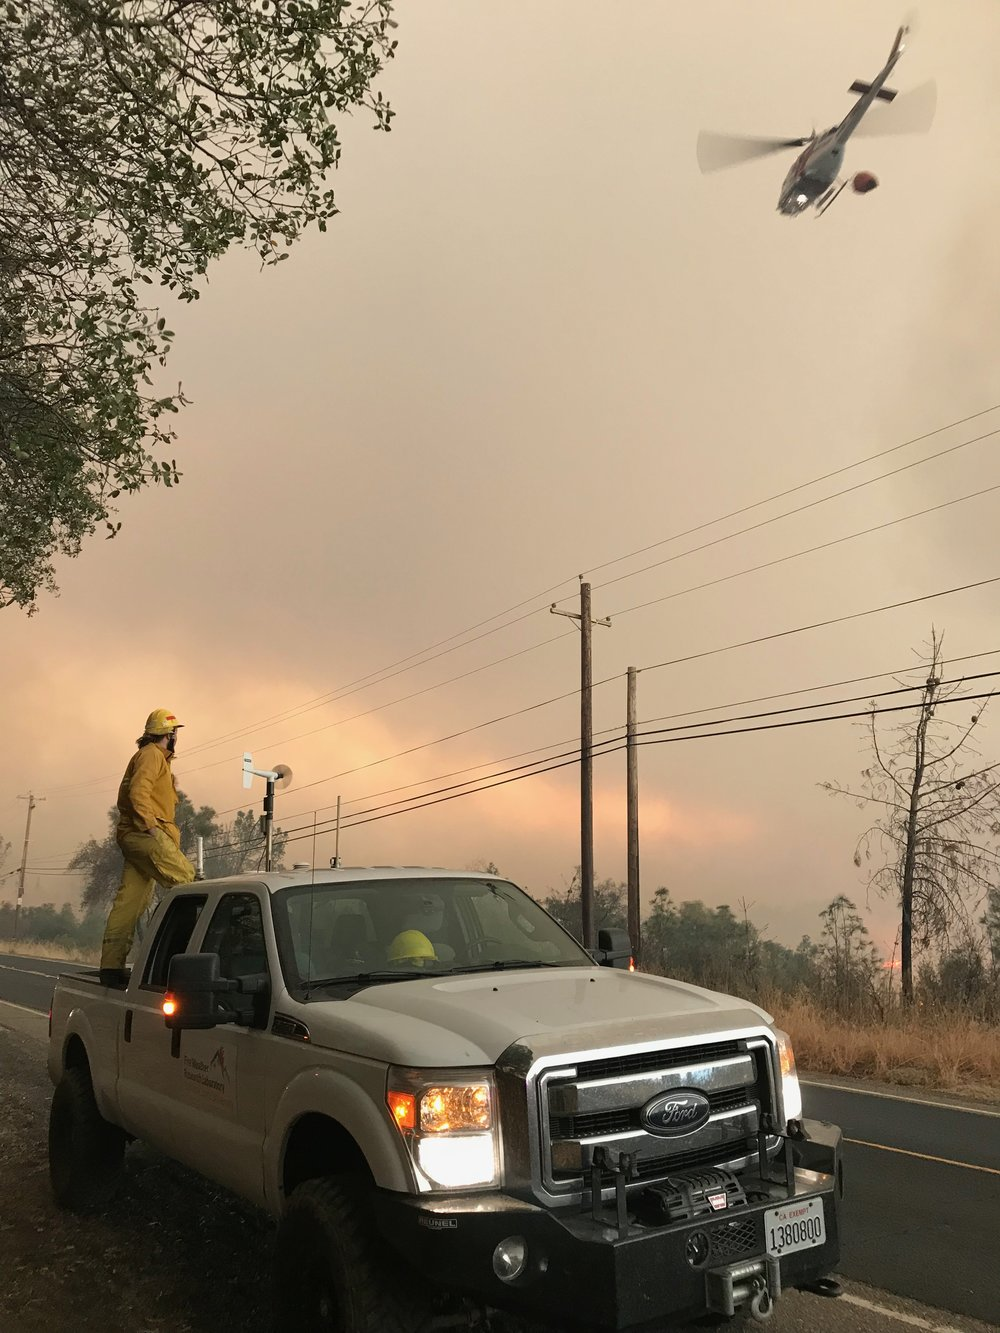 Conducting wind profile measurements at the camp fire, nov. 8 2018.